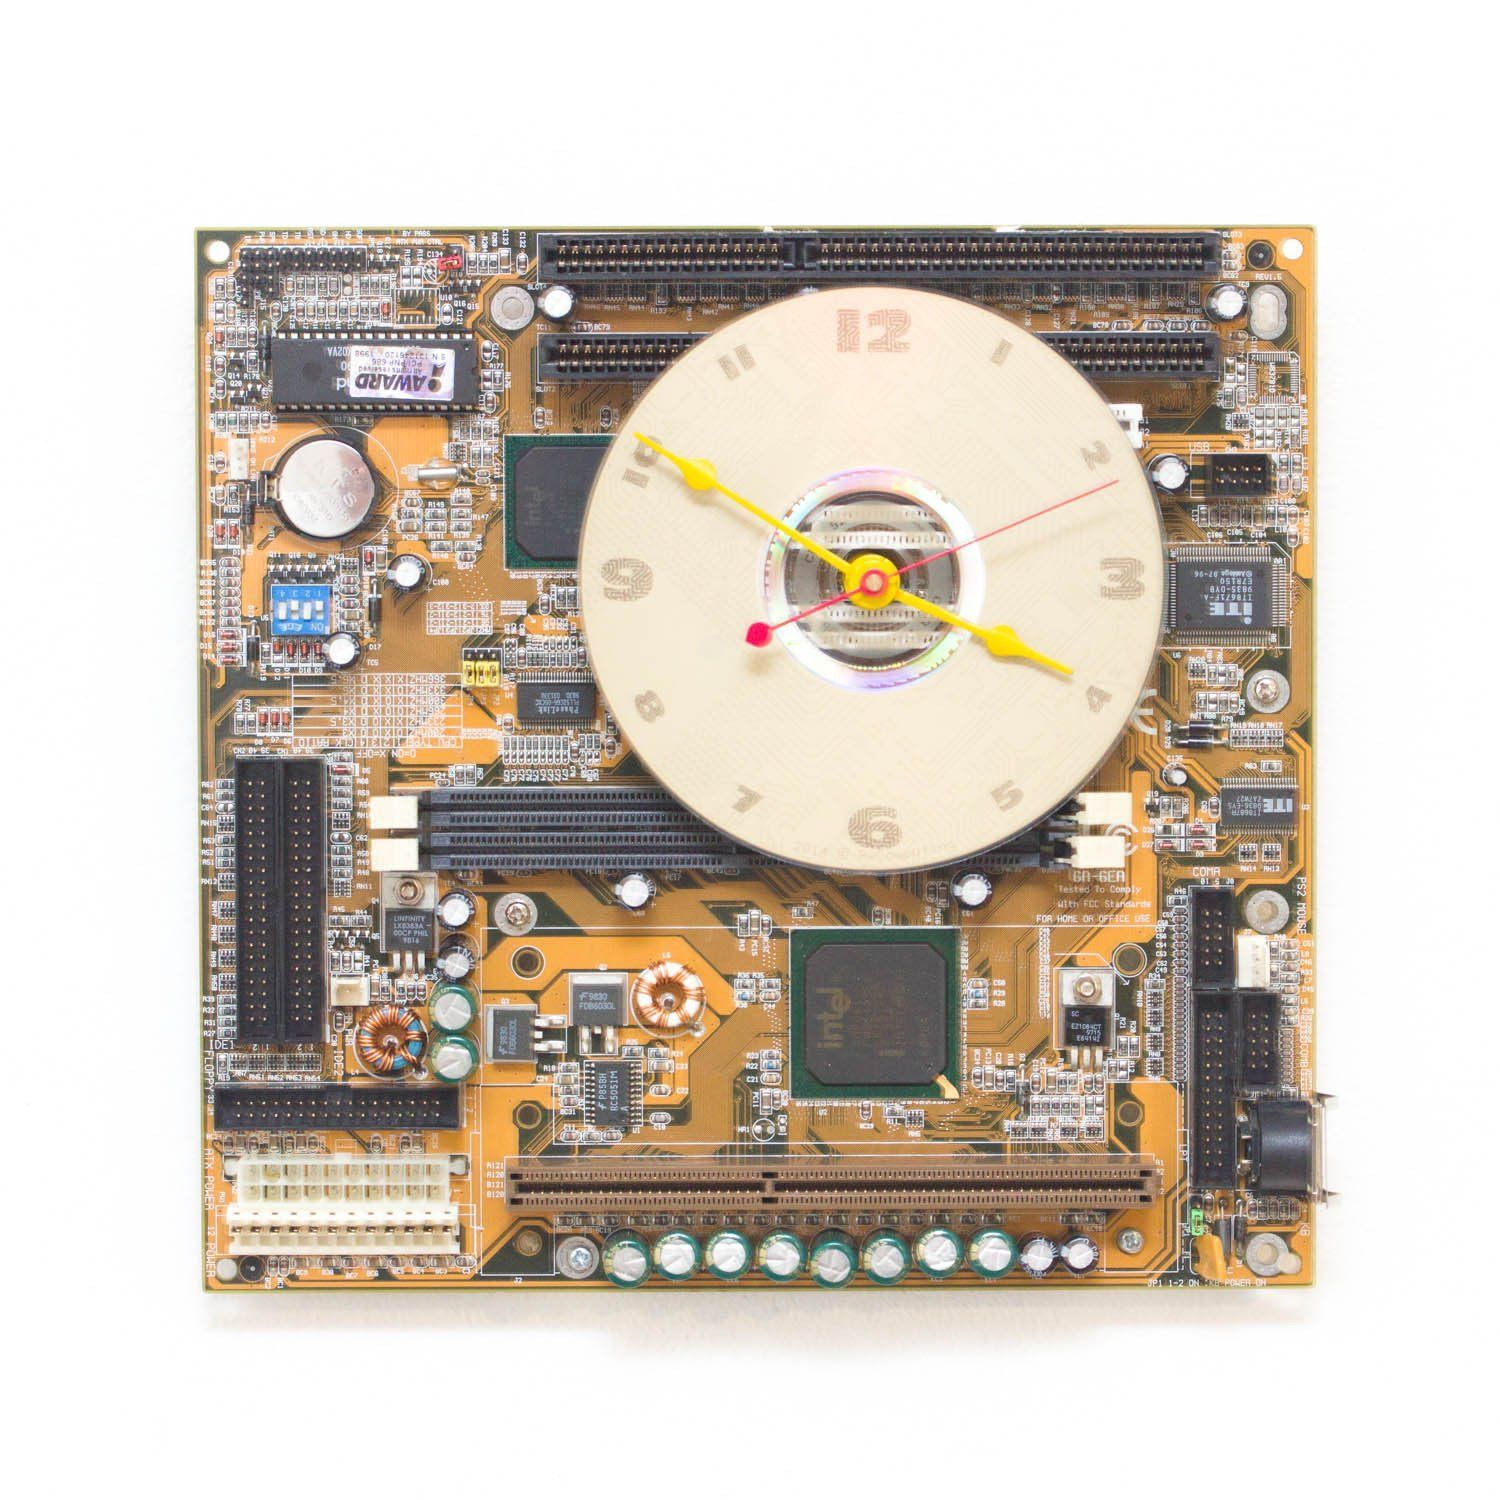 Techie Clock Made Of Yellow Olive Green Circuit Board Products Recycled Is From A